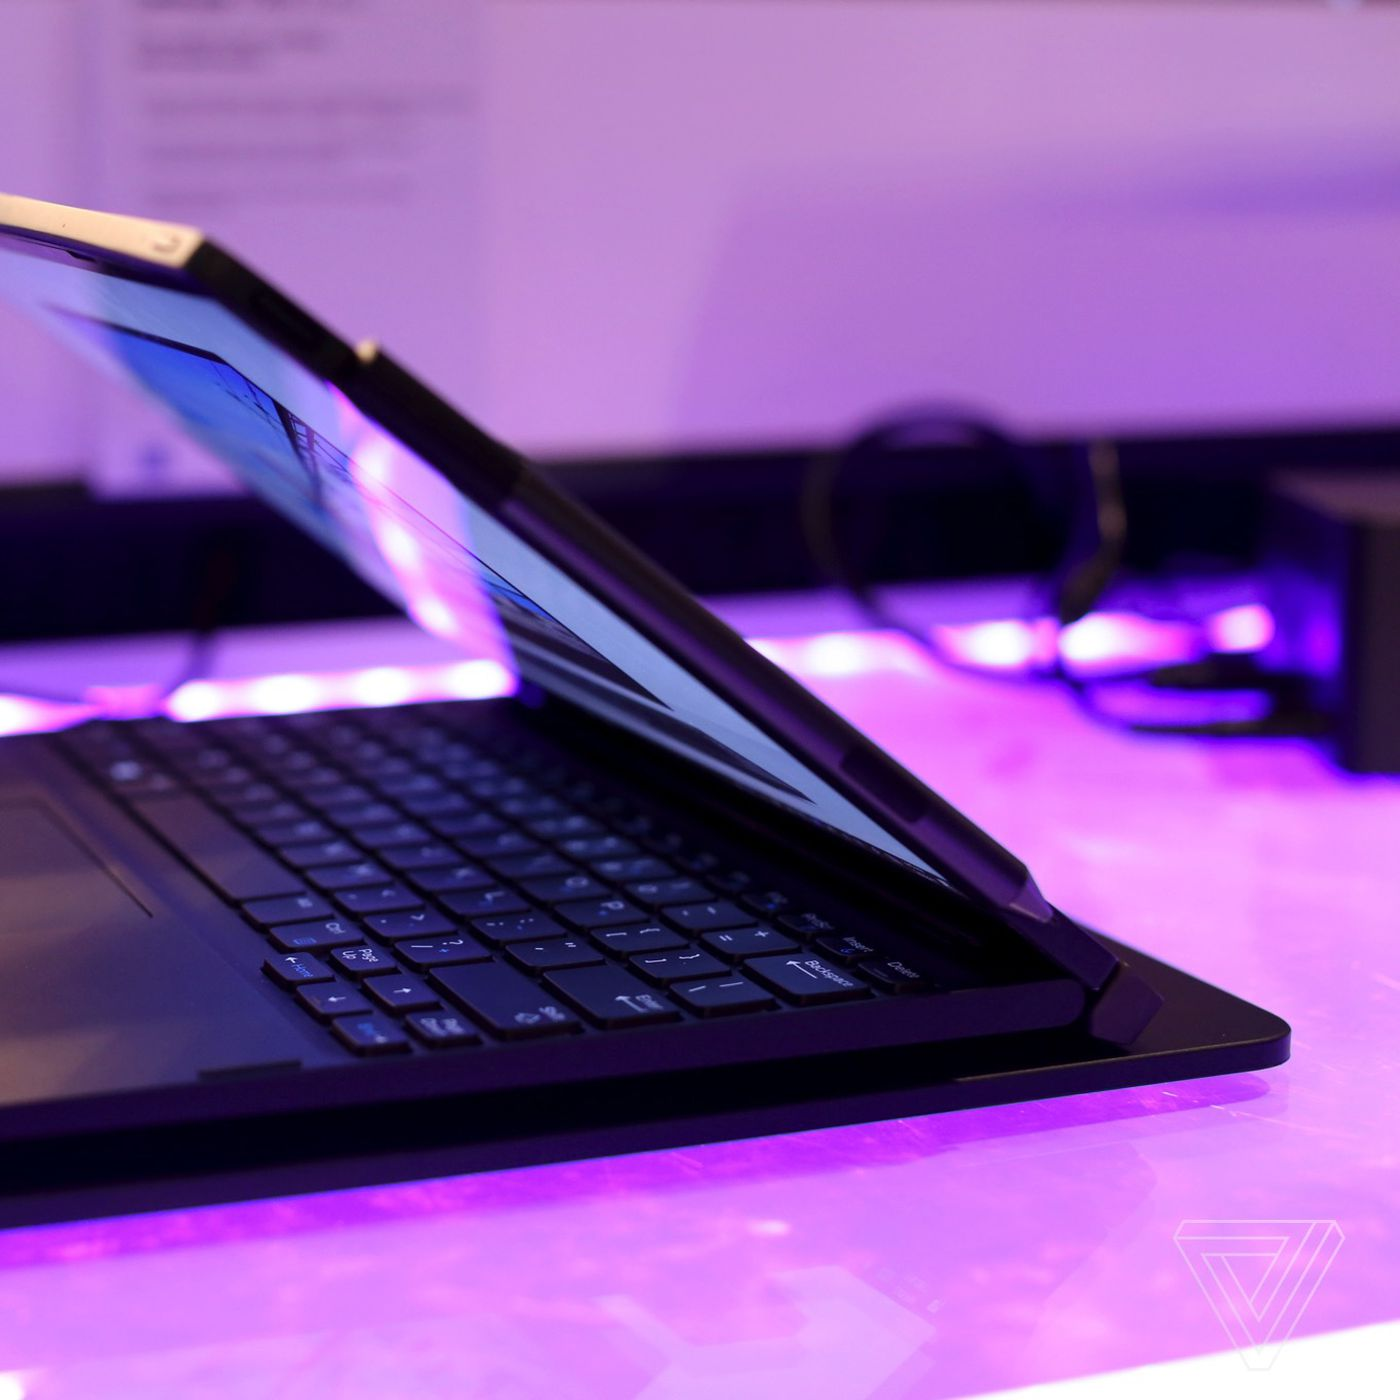 This Dell 2-in-1 laptop can wirelessly charge through its keyboard